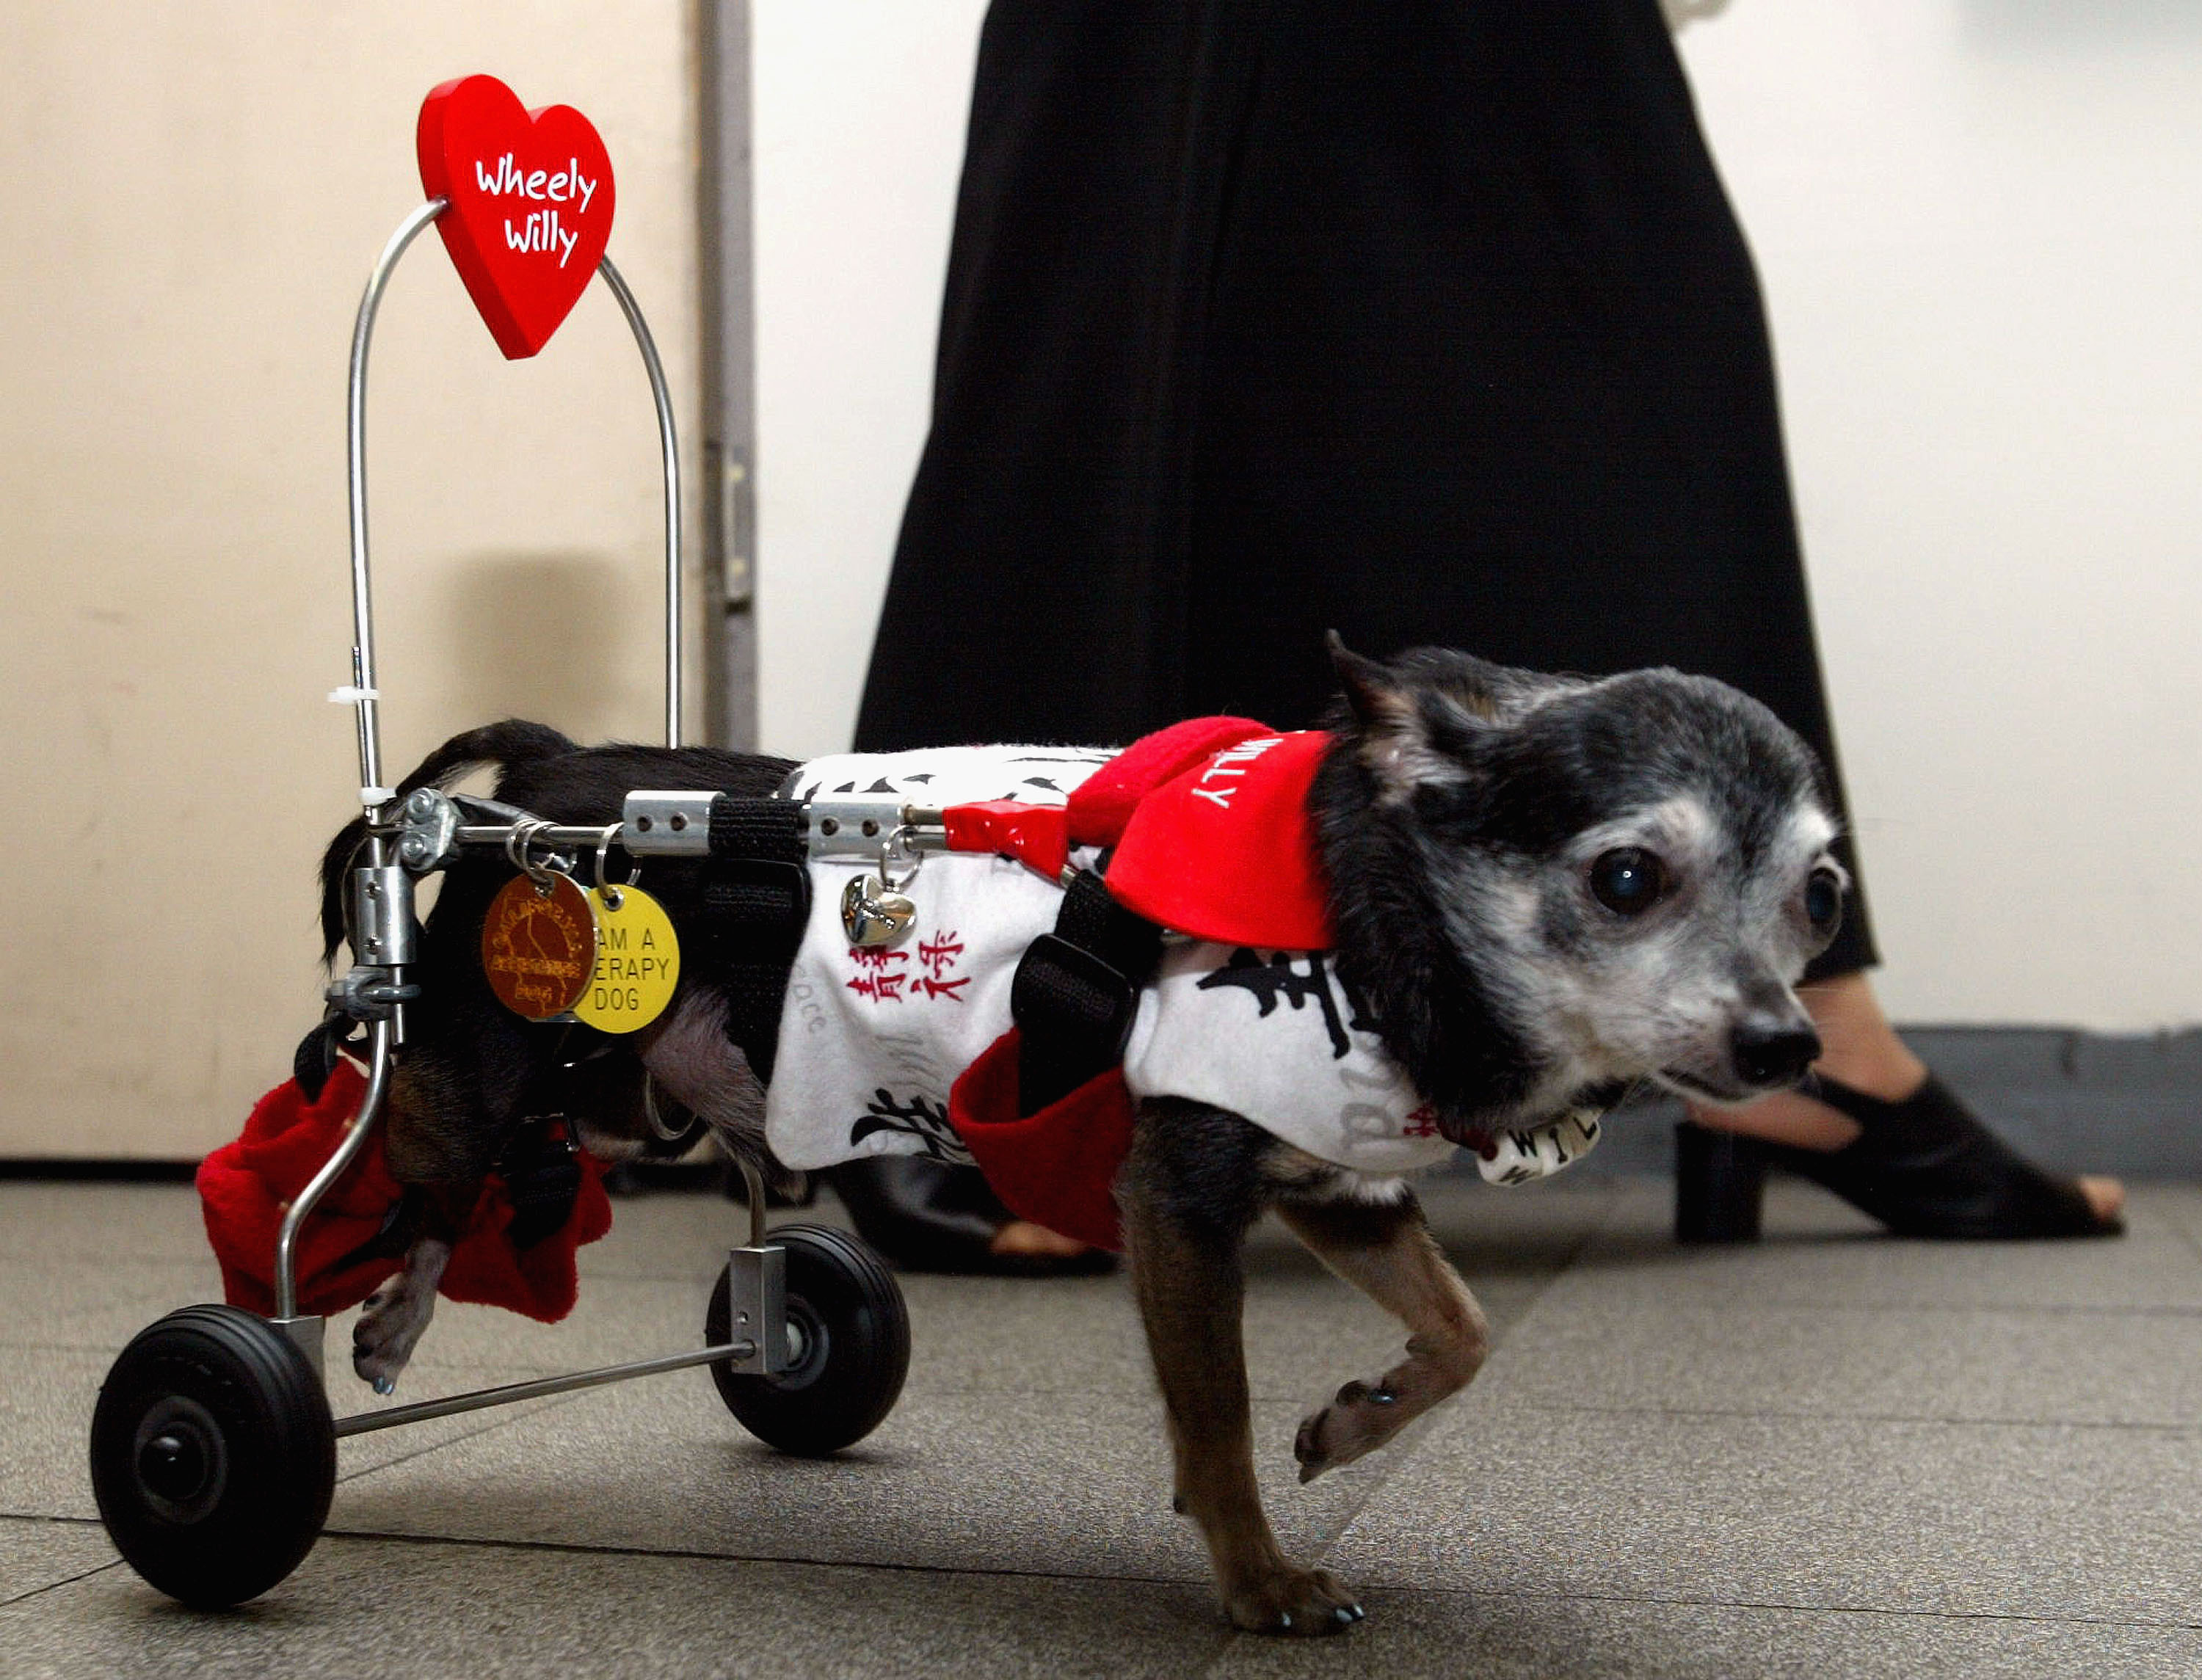 JPN: Paraplegic Chihuahua Wheels Into Tokyo - TOKYO - JULY 4: Willy the paraplegic Chihuahua from Long Beach, California, strolls in a bookshop on July 4, 2004 in Tokyo Japan. 'Wheely Willy,' with his special K-9 cart wheelchair and his owner, Deborah Turner, are on their first trip to Japan. (Photo by Koichi Kamoshida/Getty Images)